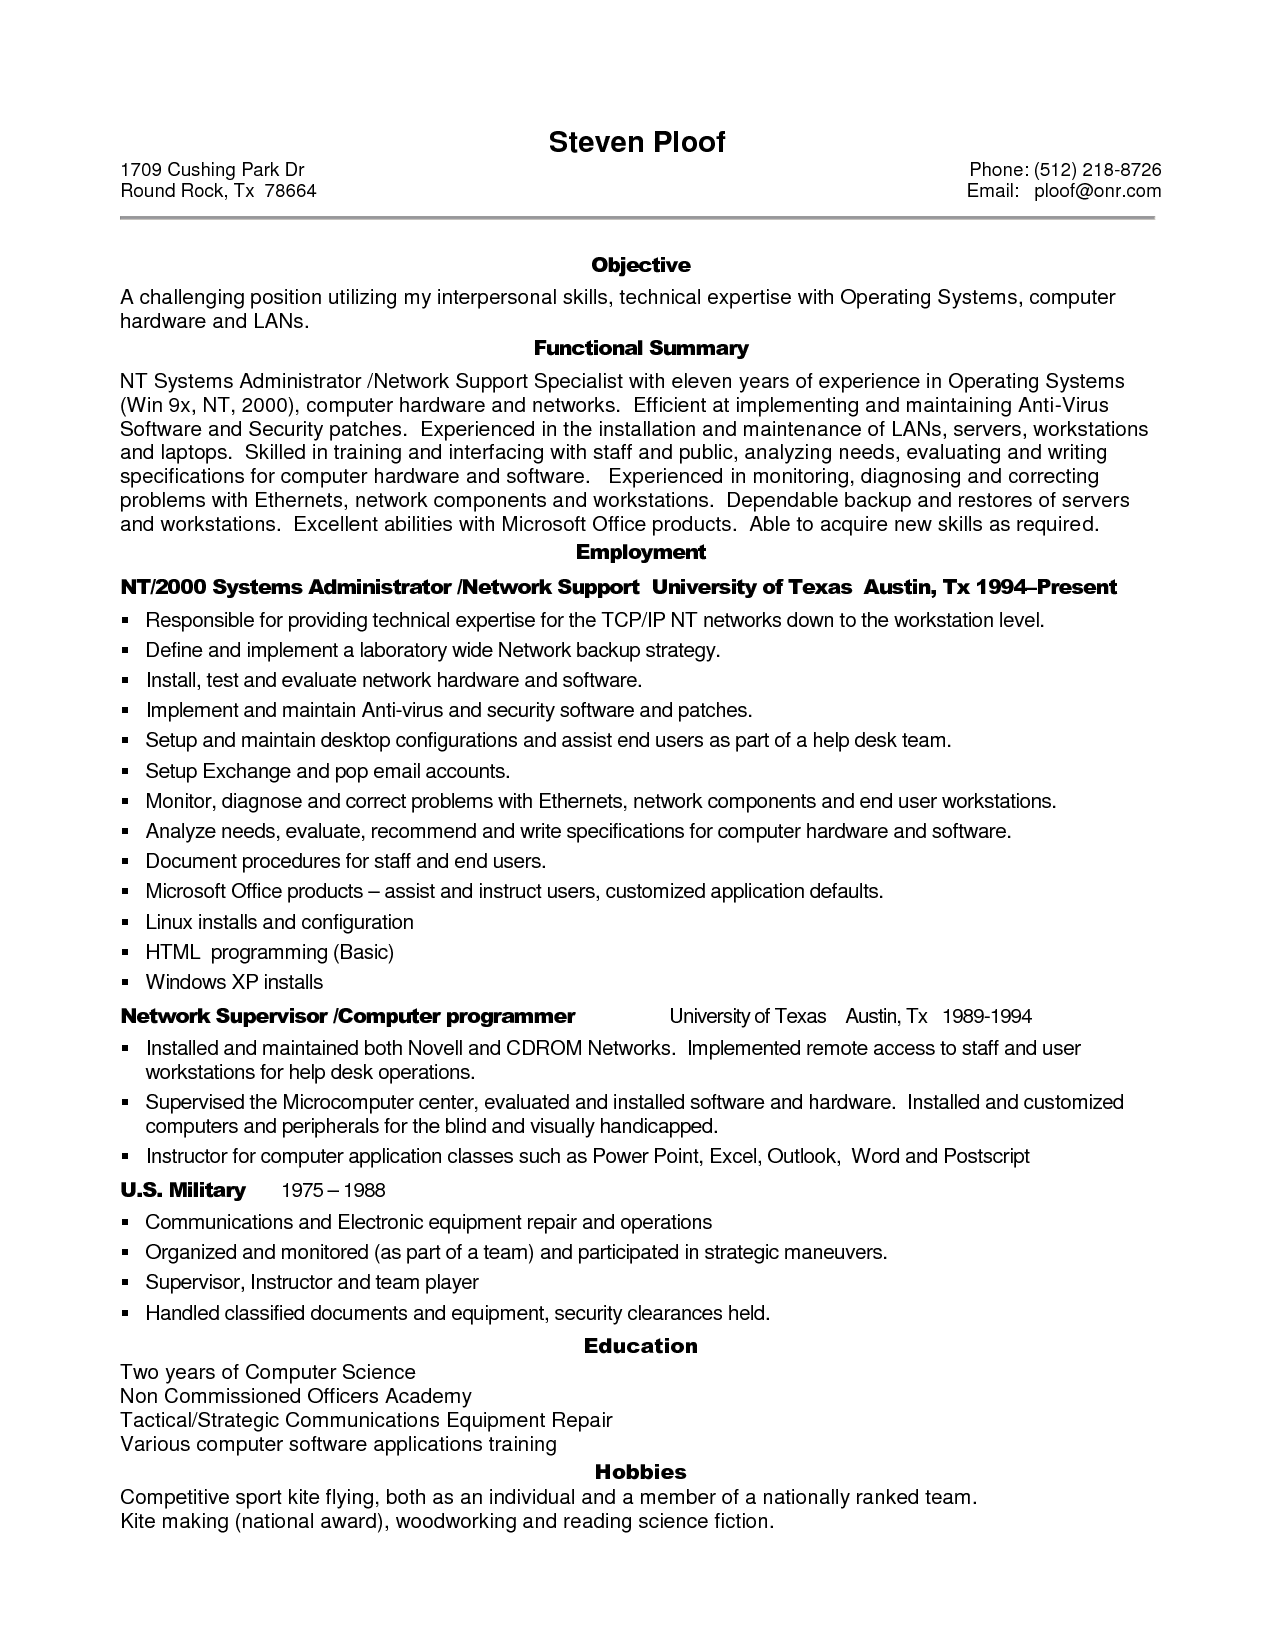 Sales And Marketing Resume Sample Resume For Experienced It Professional Sample Resume For